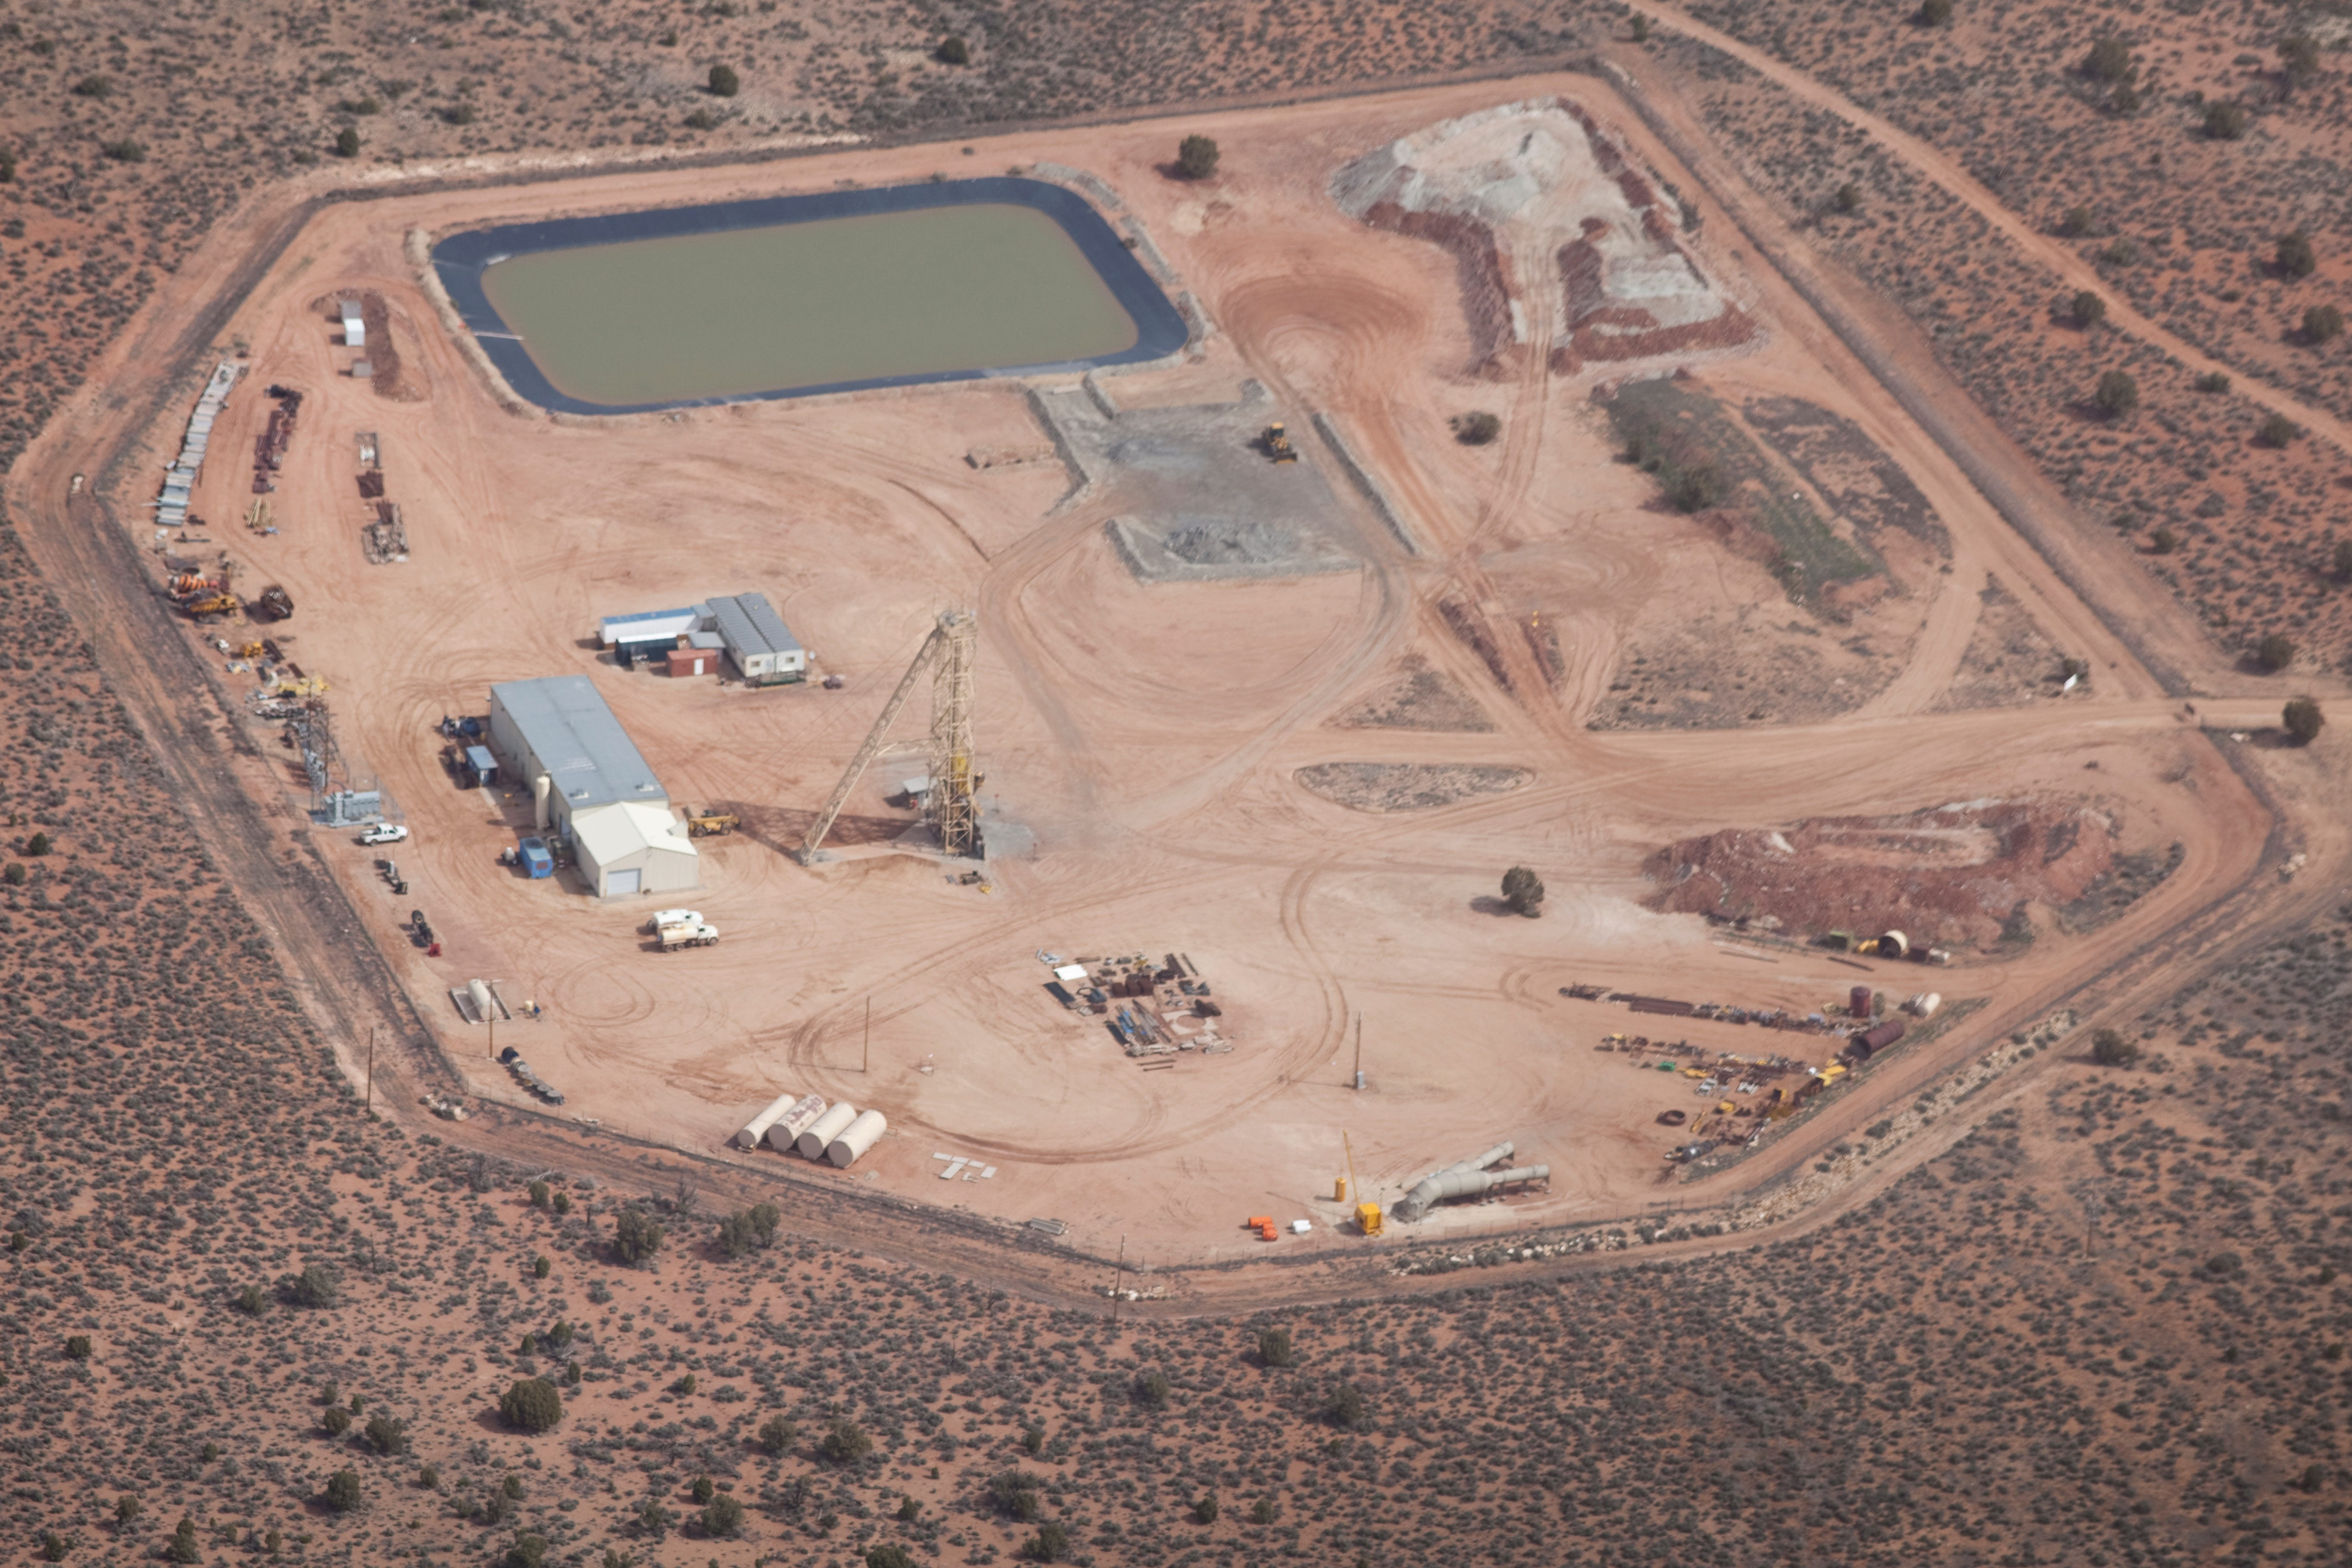 Mohave County asks feds to review ban on mining uranium near the Grand Canyon